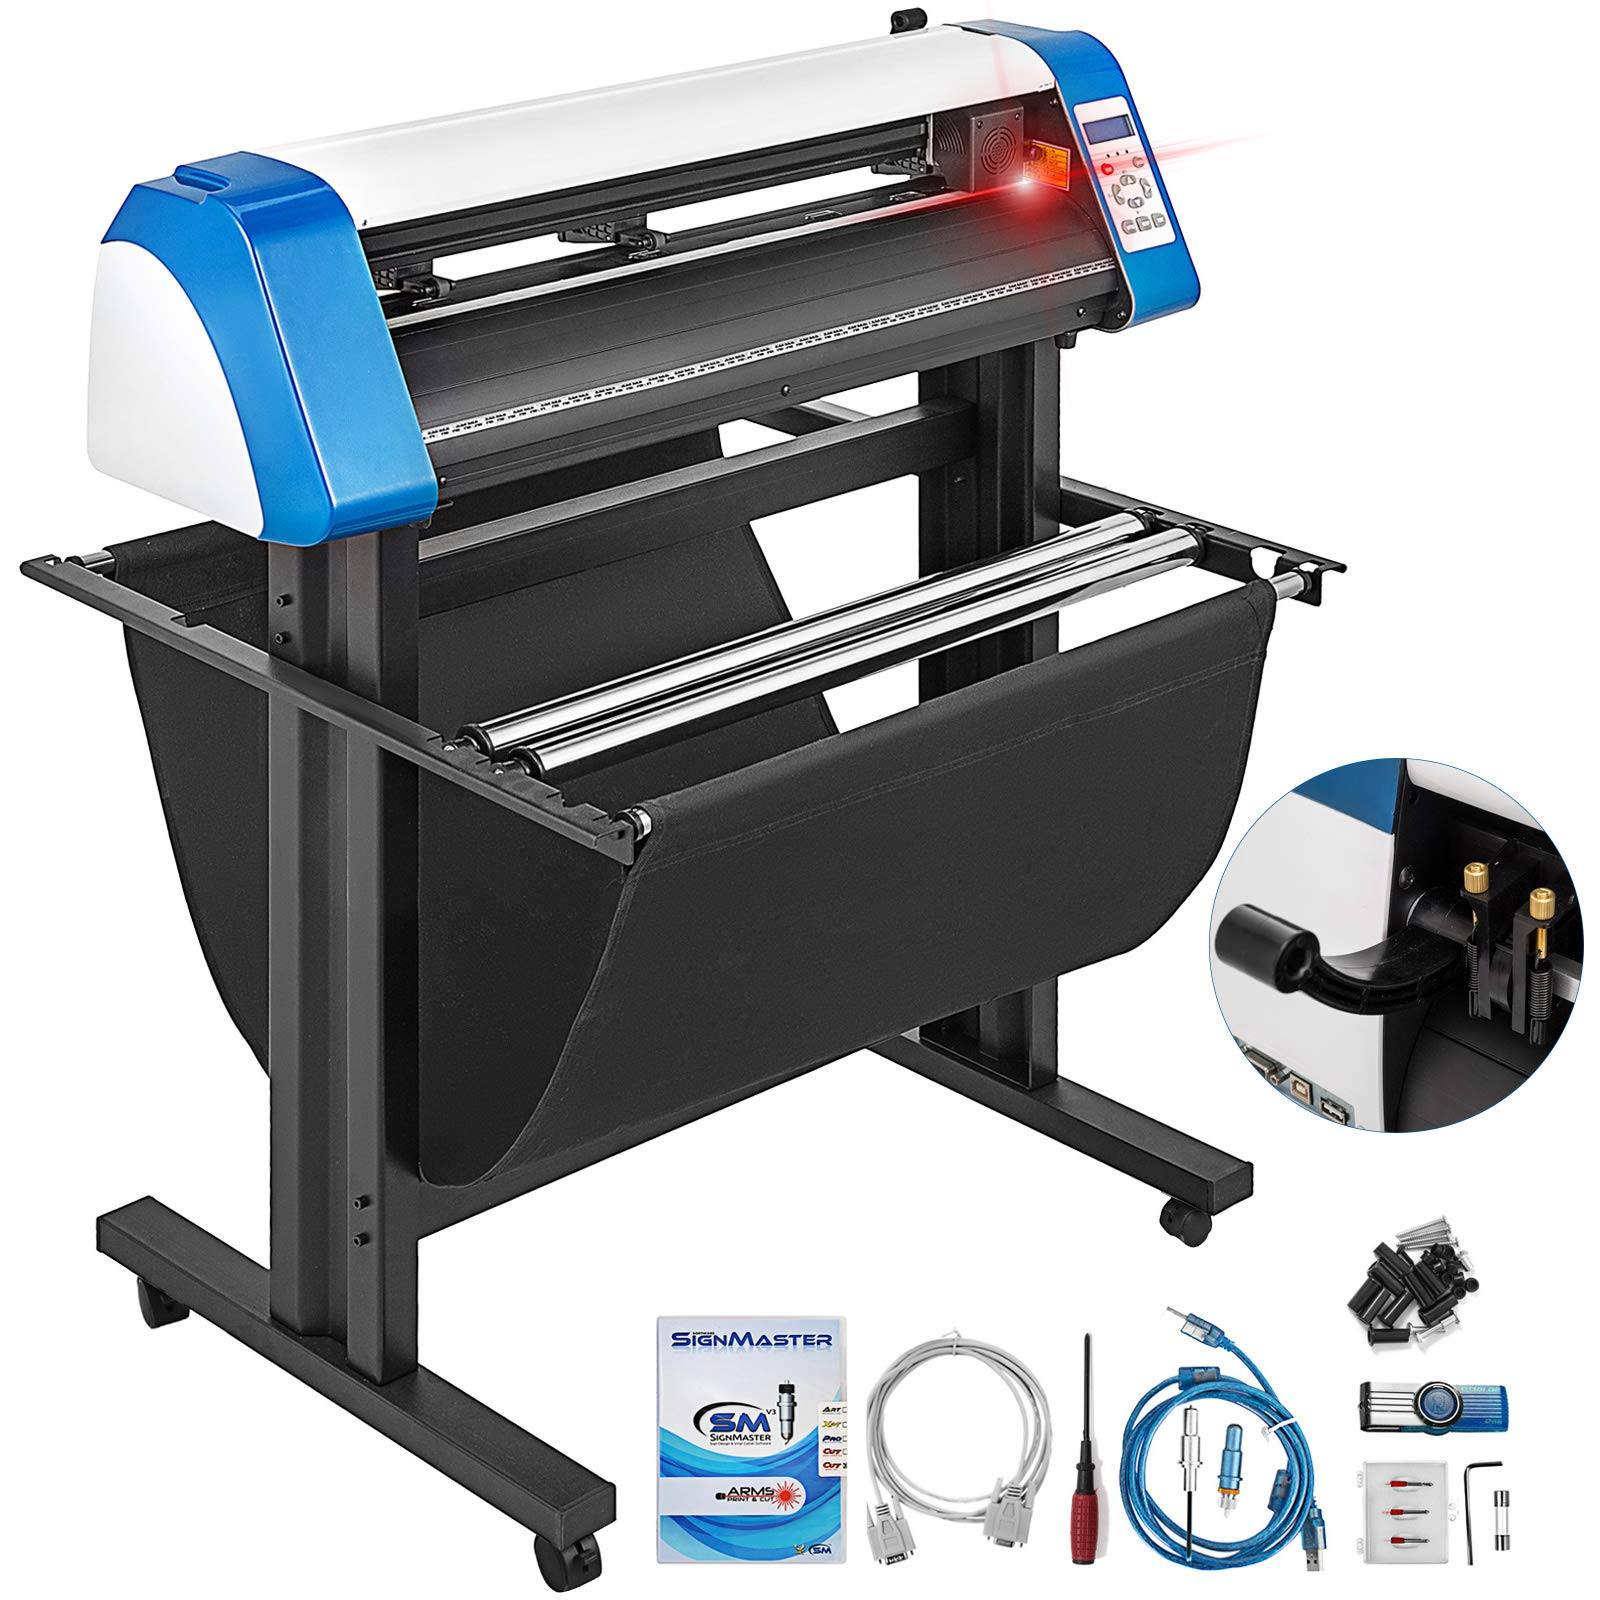 VEVOR Vinyl Cutter 34 Inch Vinyl Cutter Machine Semi-Automatic DIY Vinyl Printer Cutter Machine Manual Positioning Sign Cutting with Floor Stand Signmaster Software by VEVOR